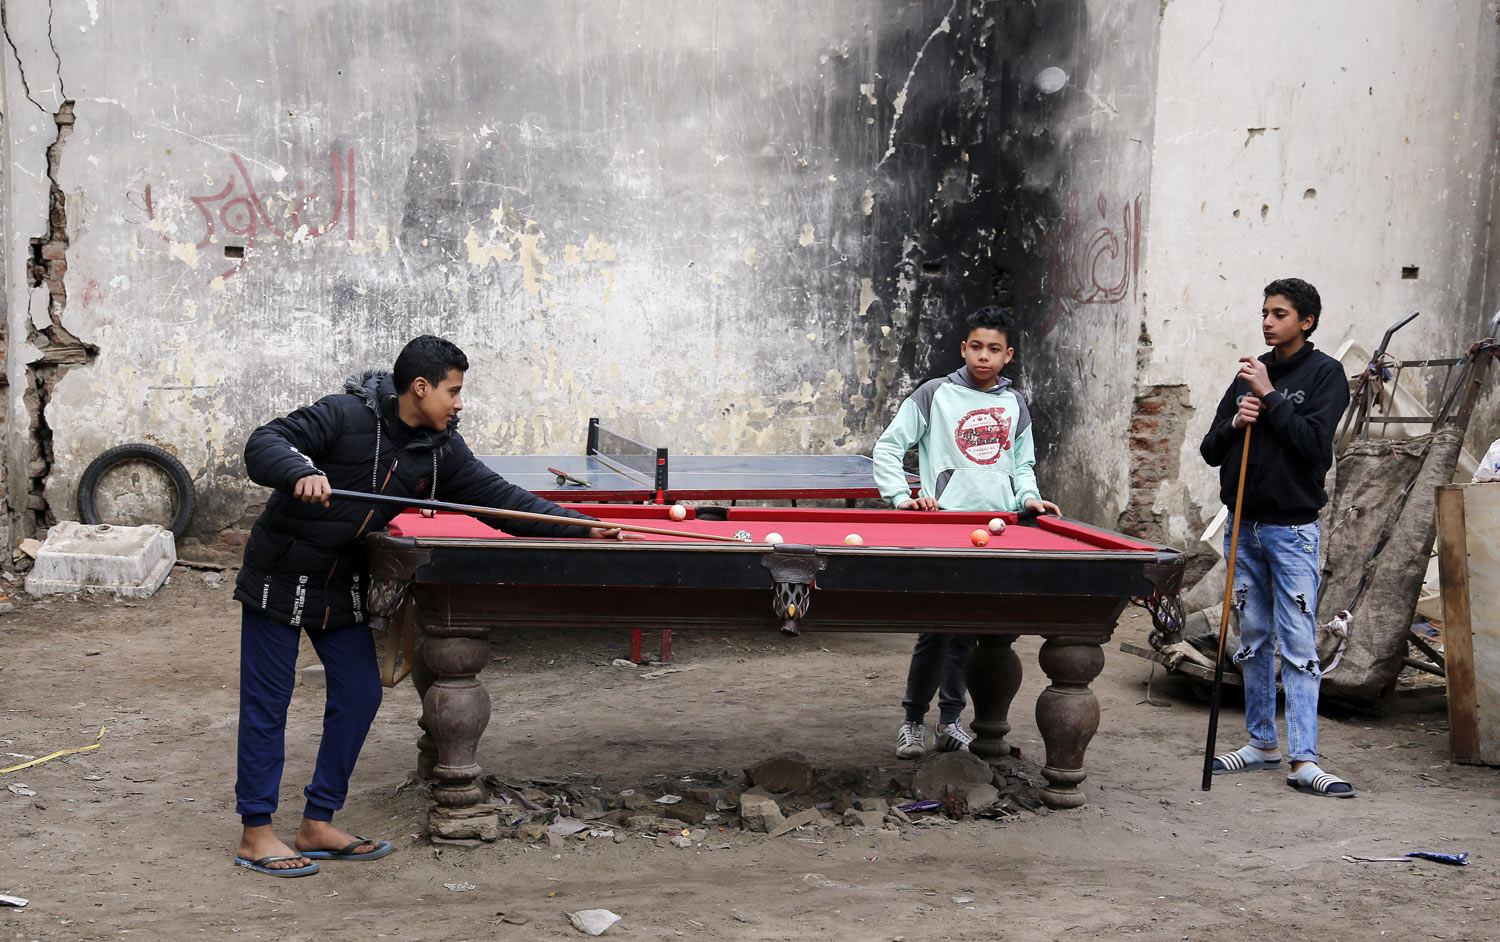 Boys play billiards as they rent a table for 4 Egyptian Pounds (U.S. $0.25), at Darb Shughlan, a popular district in Cairo, Egypt, on Friday, Feb. 15, 2019. (AP Photo/Amr Nabil)